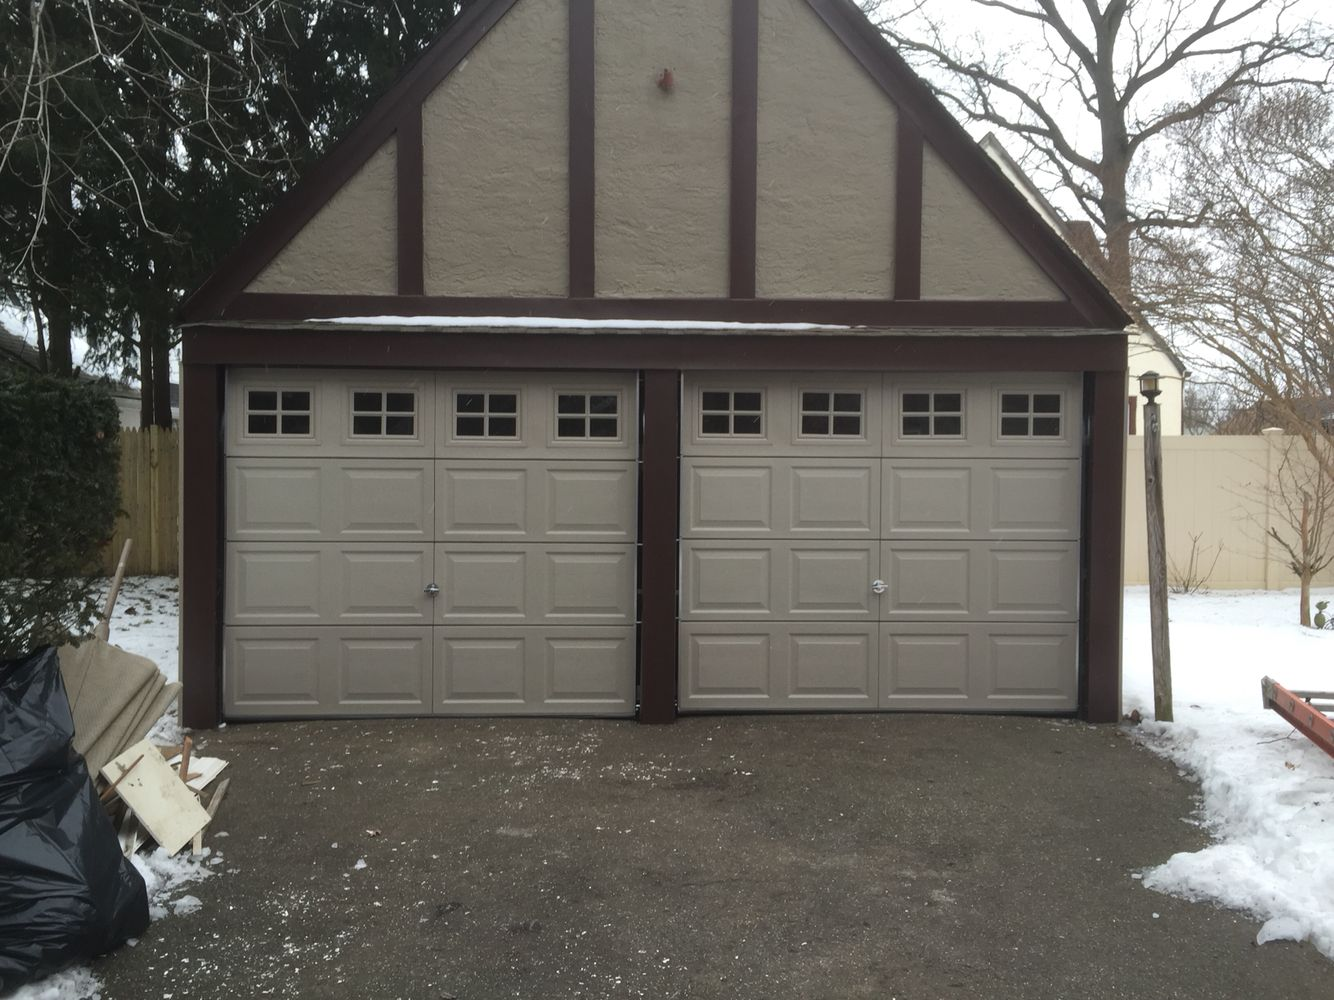 Hormann Garage Doors Garage Door Installation Garage Doors Hormann Garage Doors